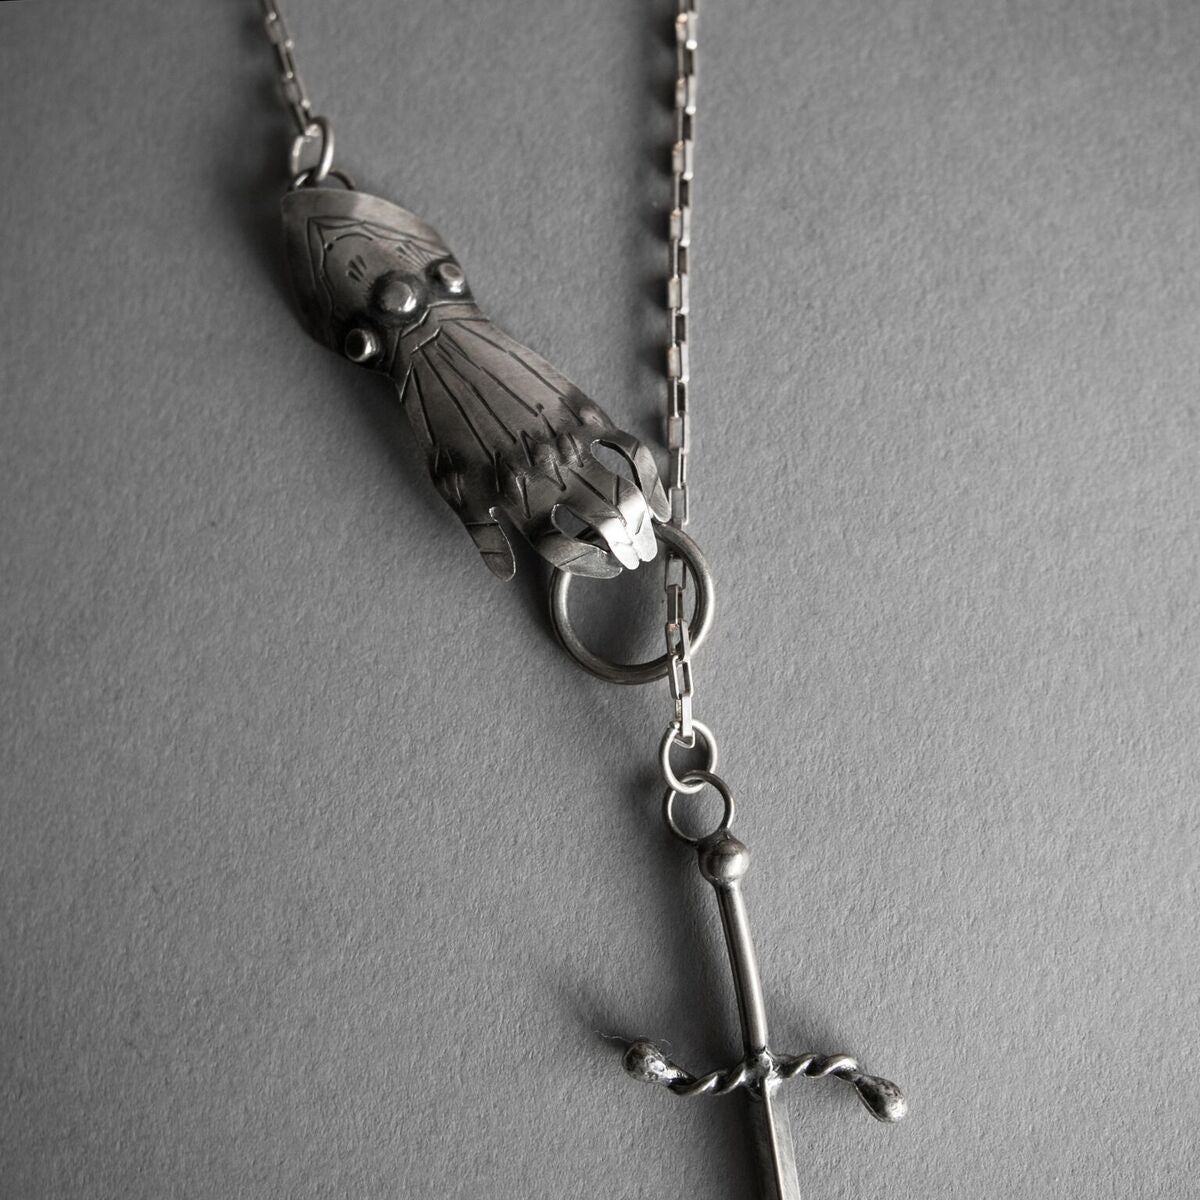 Misericord Gauntlet + Dagger Lariat Necklace, Jewelry, Morgaine Faye - Altar PDX